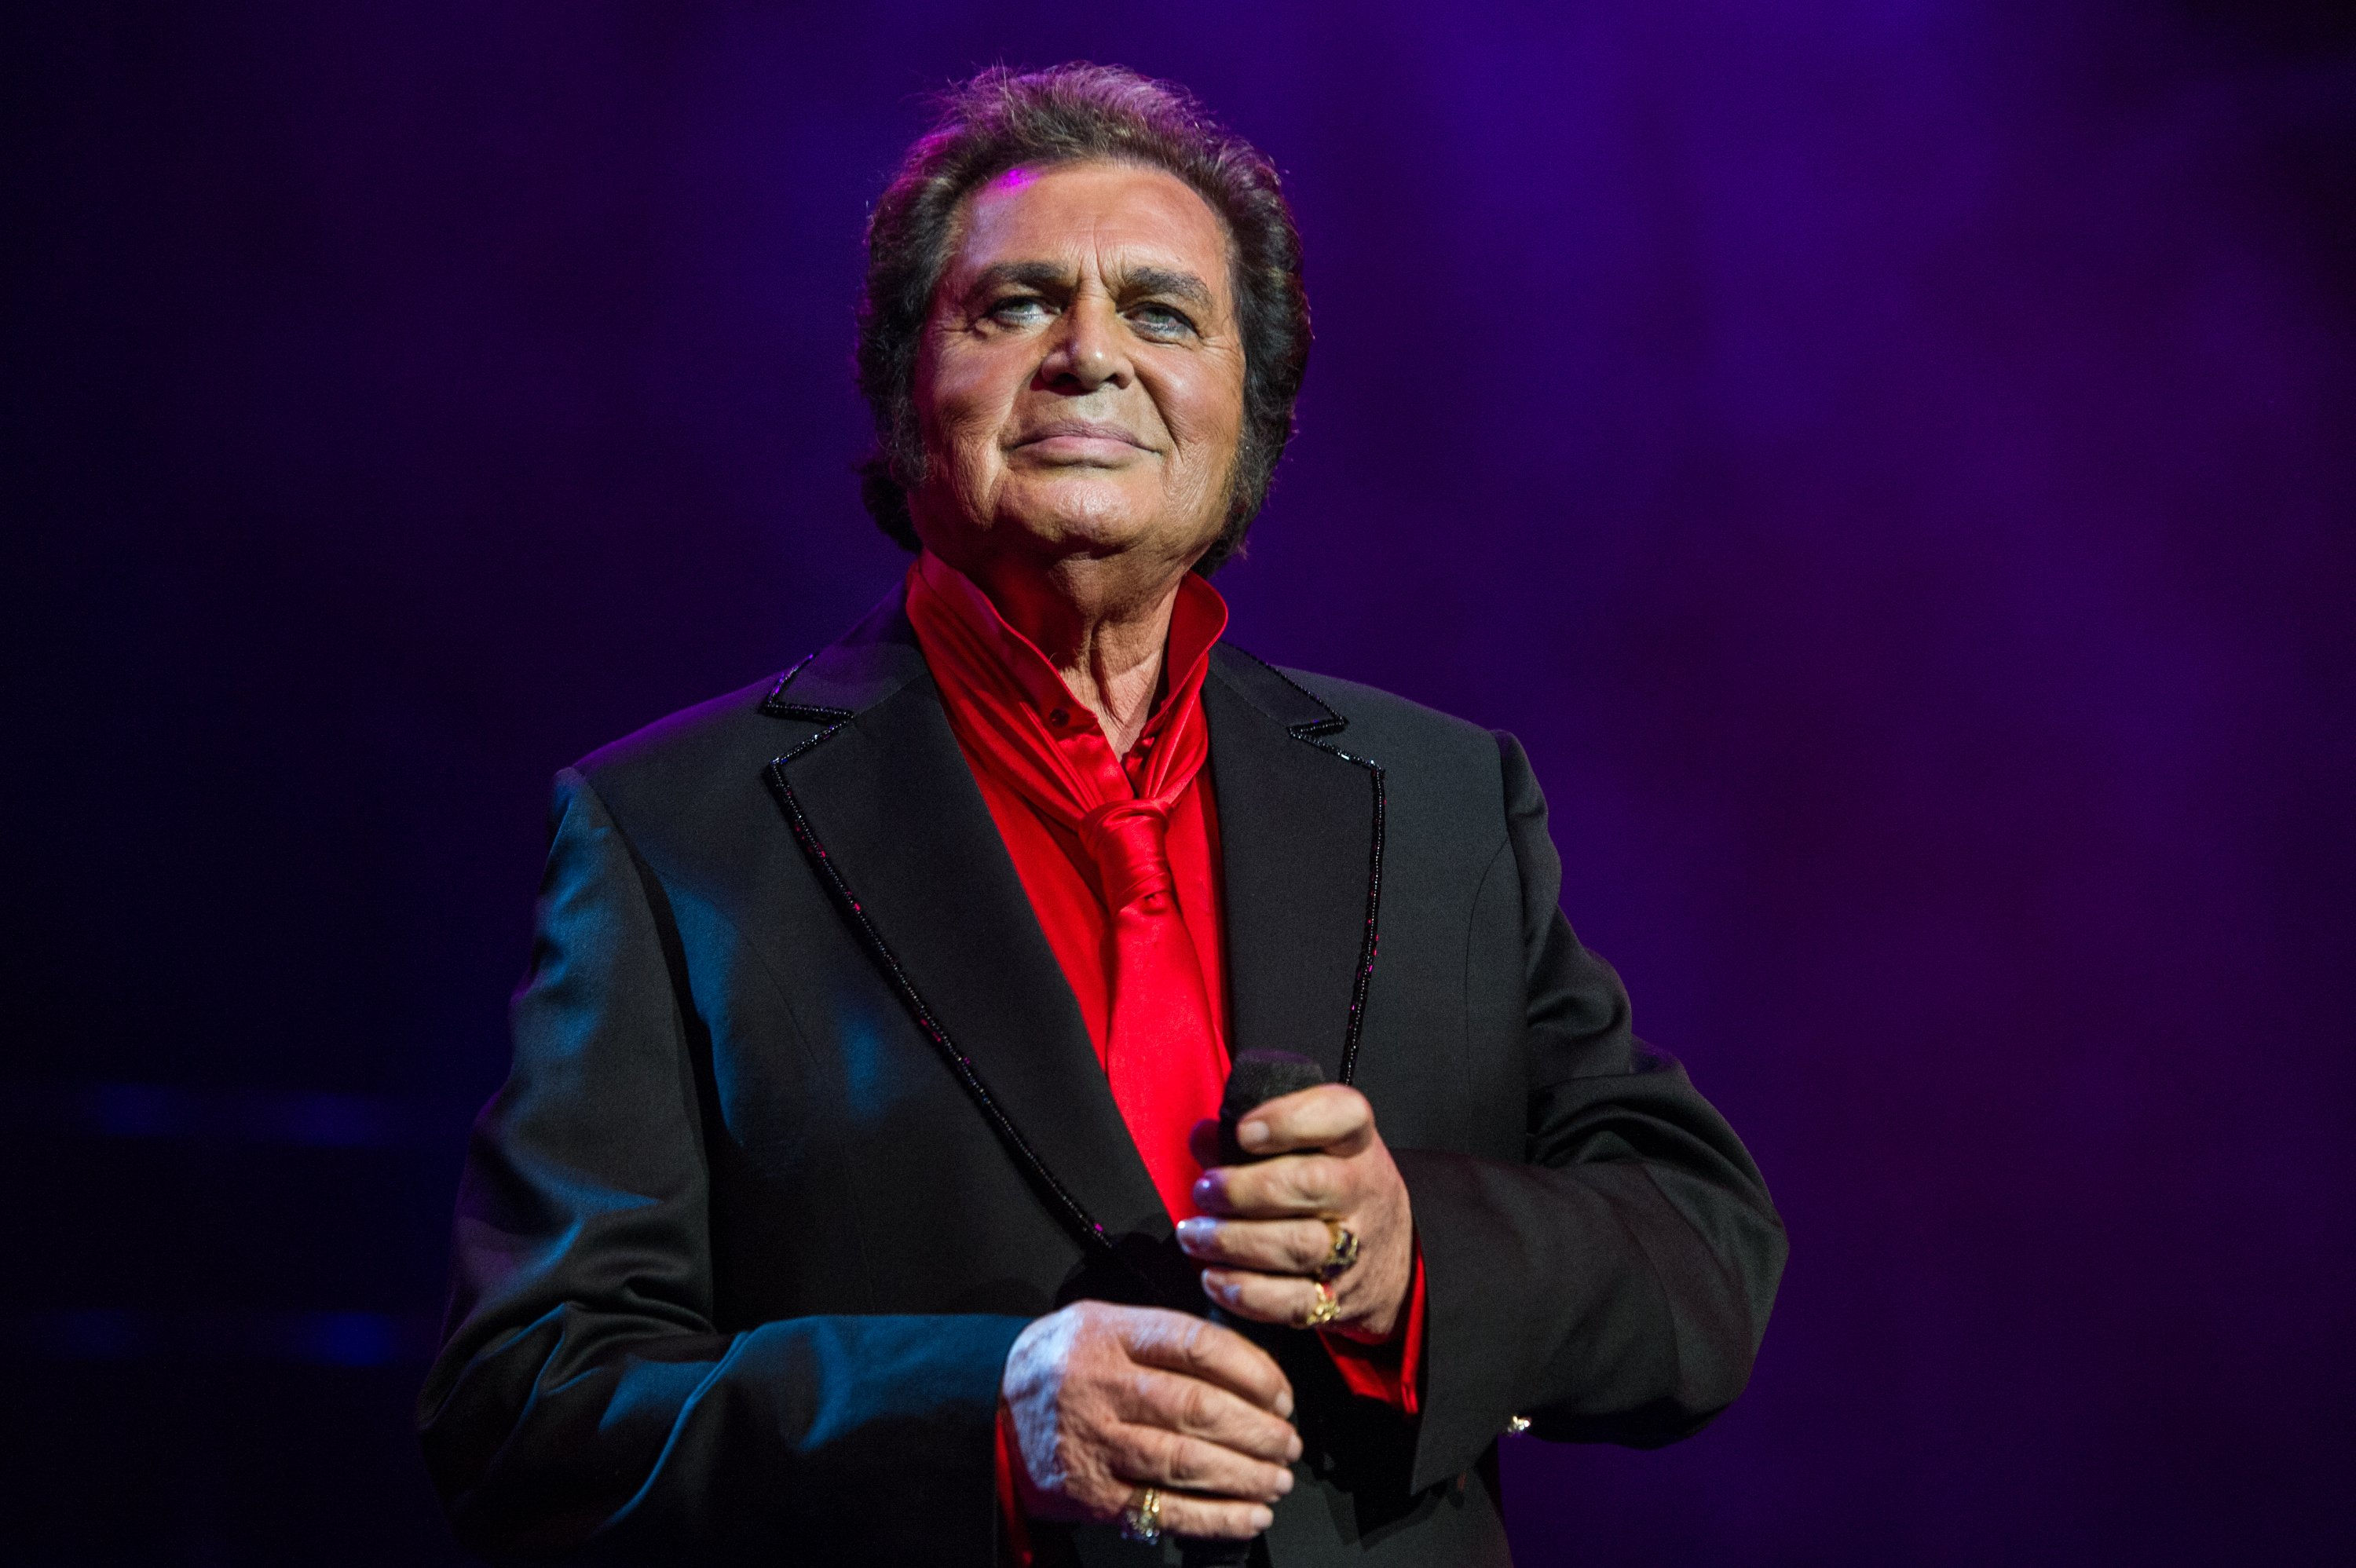 Engelbert Humperdinck pictured onstage performing at Royal Albert Hall, 2015, London, England. | Photo: Getty Images